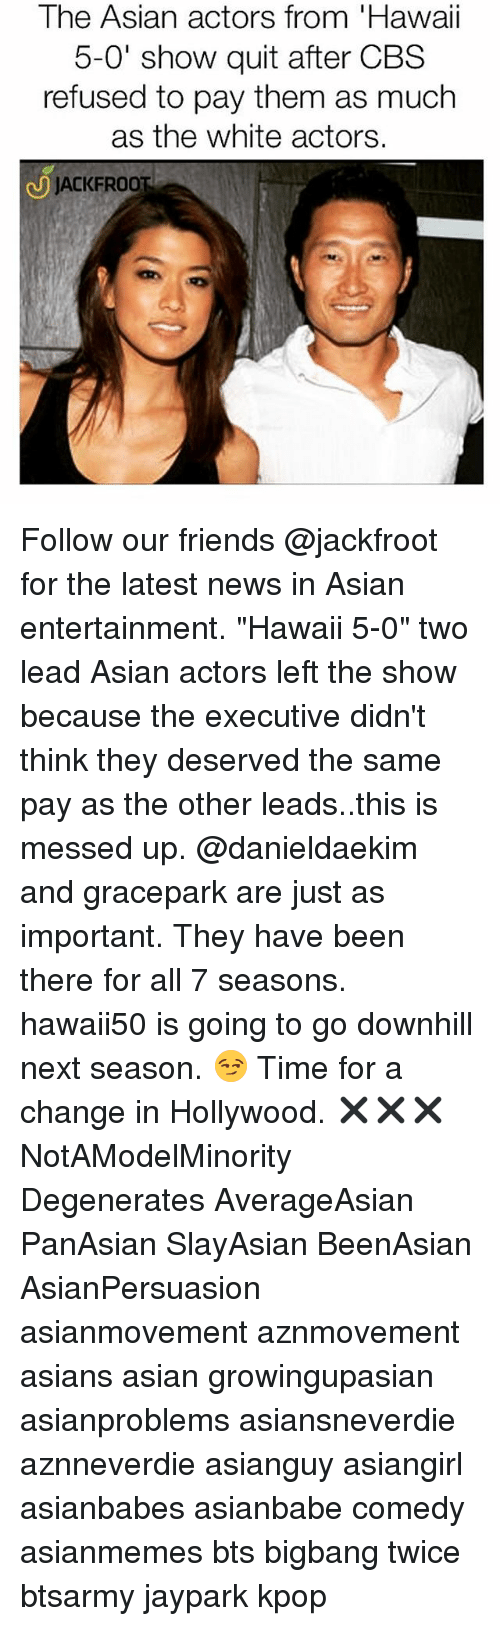 "Asian, Friends, and Memes: The Asian actors from 'Hawaii  5-0' show quit after CBS  refused to pay them as much  as the white actors.  J JACKFROOT  JACKFR Follow our friends @jackfroot for the latest news in Asian entertainment. ""Hawaii 5-0"" two lead Asian actors left the show because the executive didn't think they deserved the same pay as the other leads..this is messed up. @danieldaekim and gracepark are just as important. They have been there for all 7 seasons. hawaii50 is going to go downhill next season. 😏 Time for a change in Hollywood. ✖️✖️✖️ NotAModelMinority Degenerates AverageAsian PanAsian SlayAsian BeenAsian AsianPersuasion asianmovement aznmovement asians asian growingupasian asianproblems asiansneverdie aznneverdie asianguy asiangirl asianbabes asianbabe comedy asianmemes bts bigbang twice btsarmy jaypark kpop"